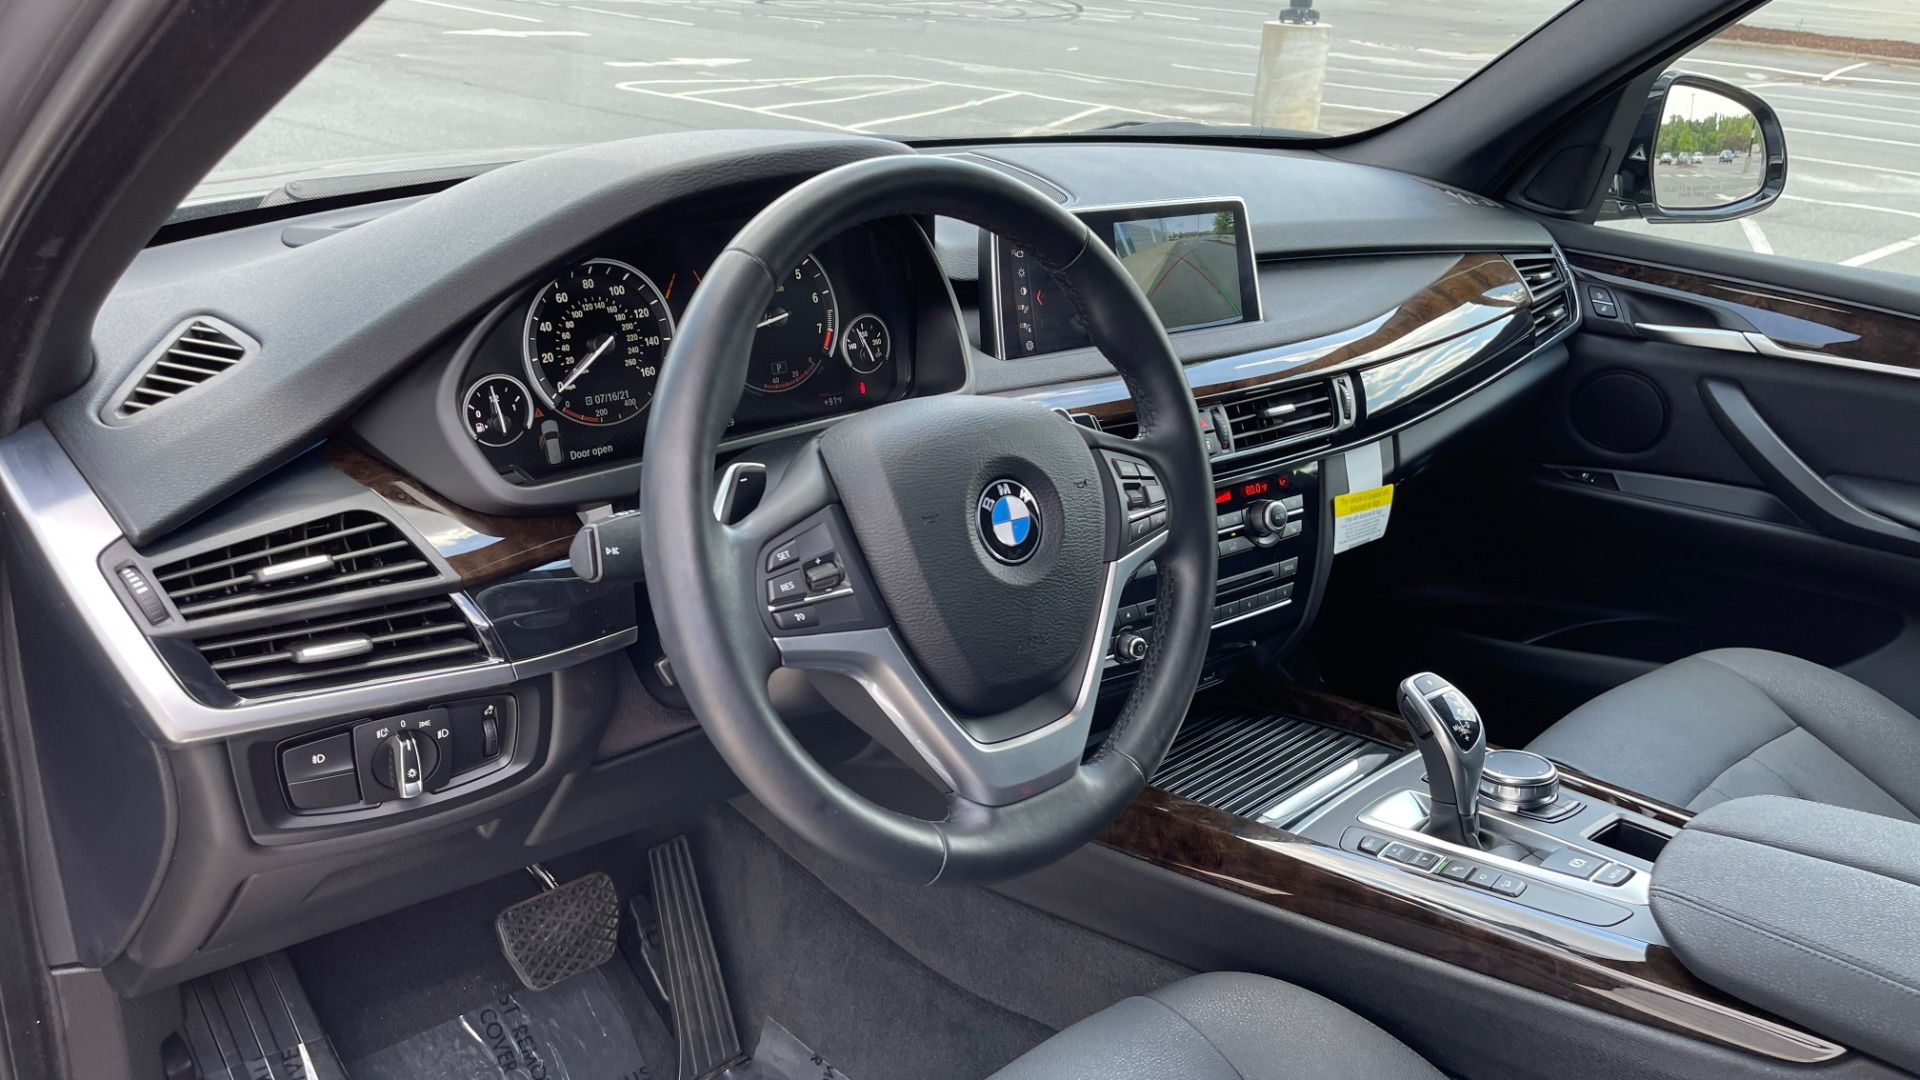 Used 2018 BMW X5 XDRIVE35I PREMIUM / DRVR ASST / WIRELESS CHARGING / CAMERAS for sale $46,995 at Formula Imports in Charlotte NC 28227 42